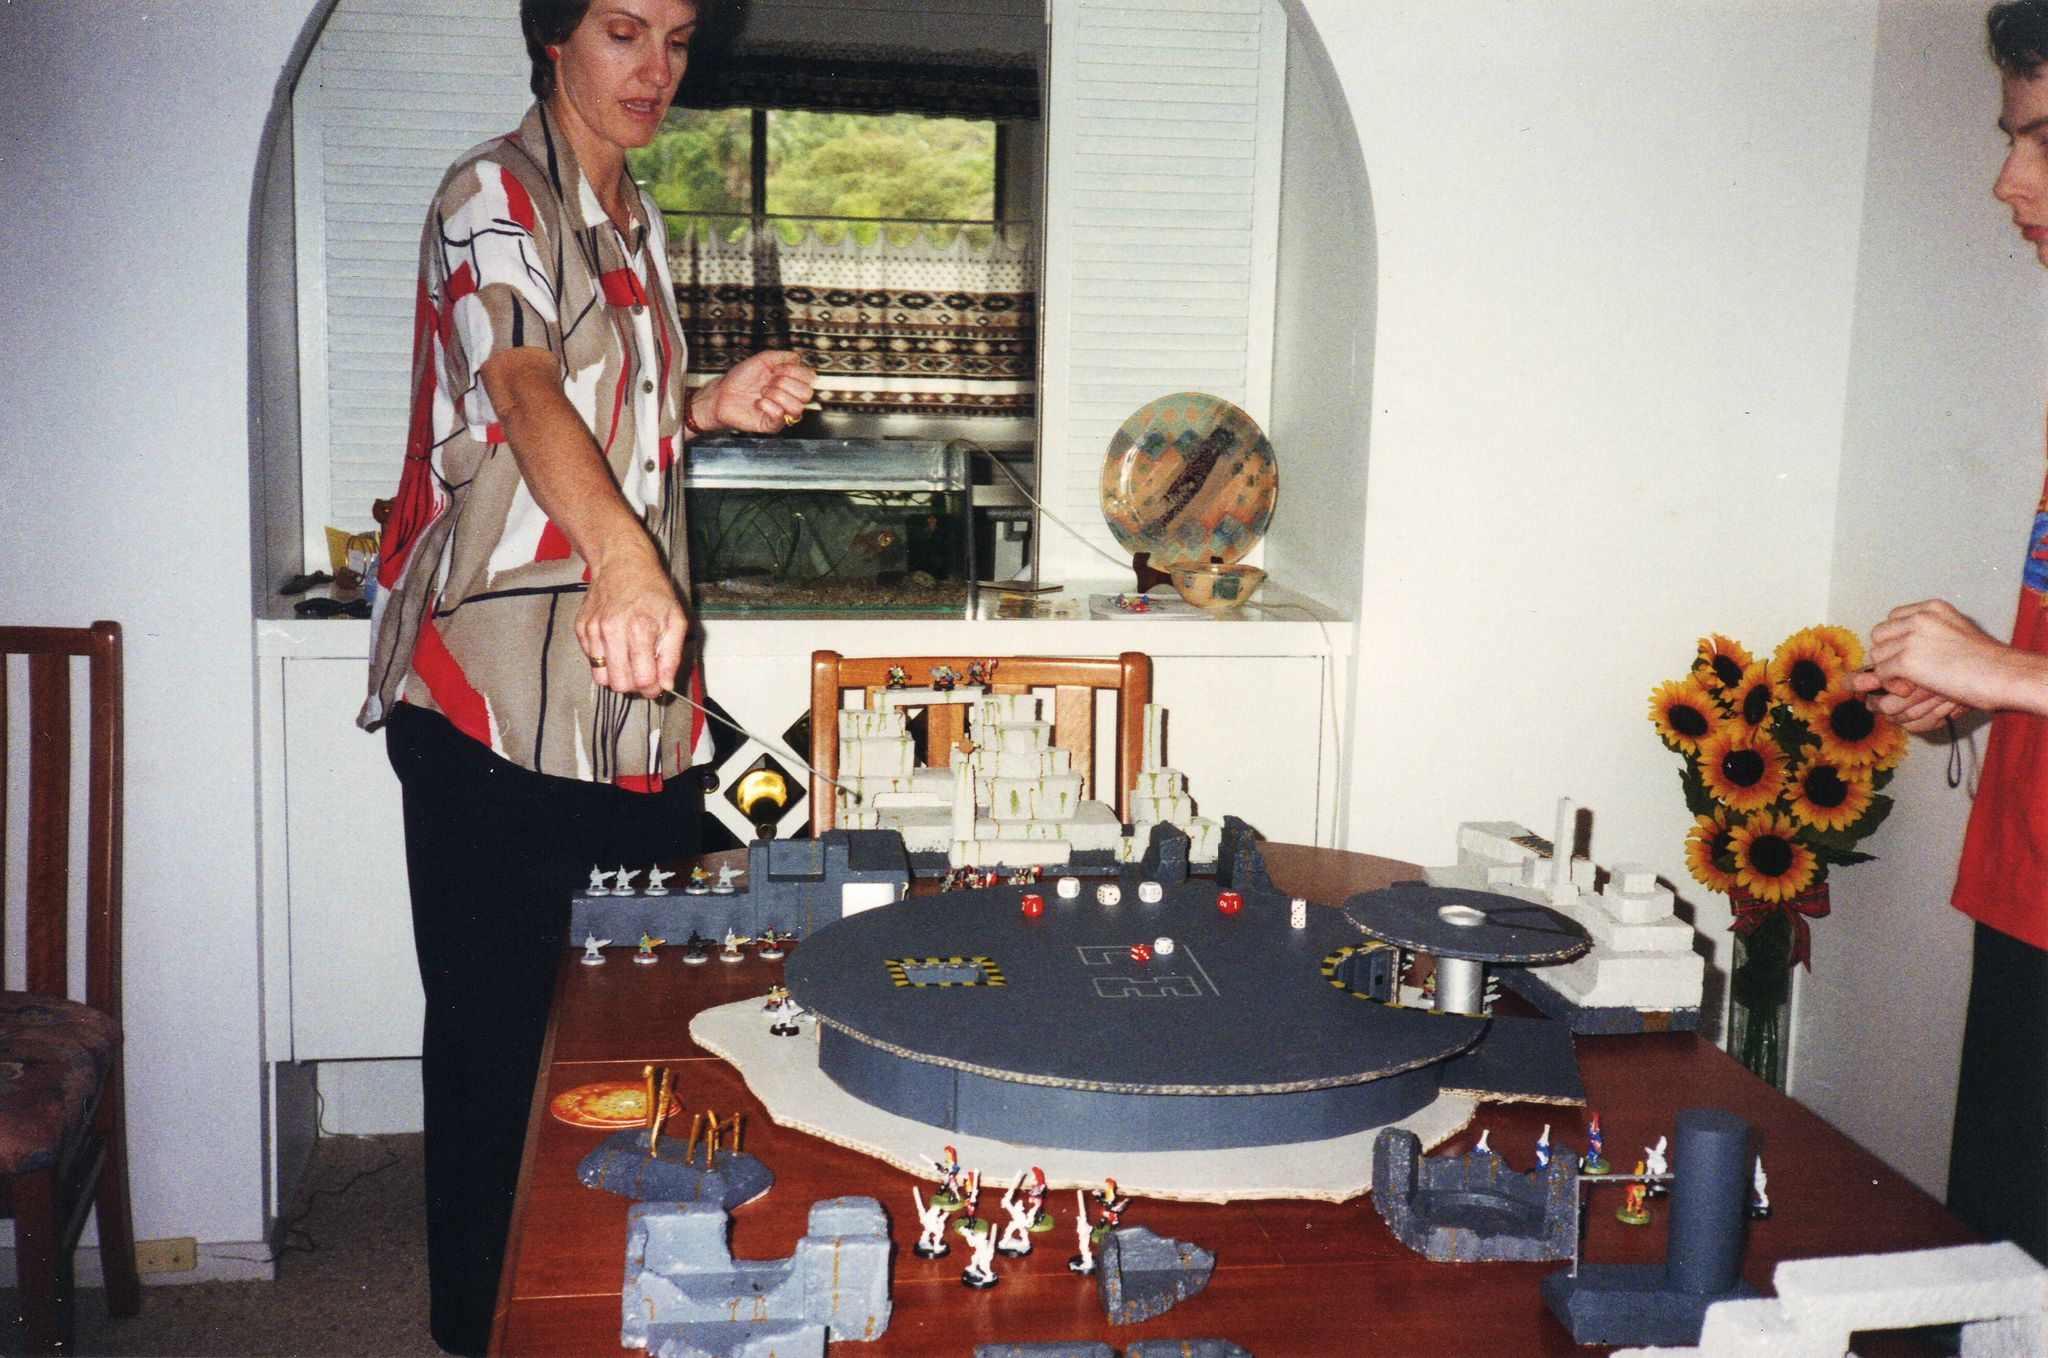 A photo of our dining room table with a bunch of crummy polystyrene terrain on it but also an enormous landing pad made out of cardboard, and lots of miniatures. My mum, a tall white woman with a very mid-90s short but poofy hairdo, is standing gesticulating at the table with a tape measure.